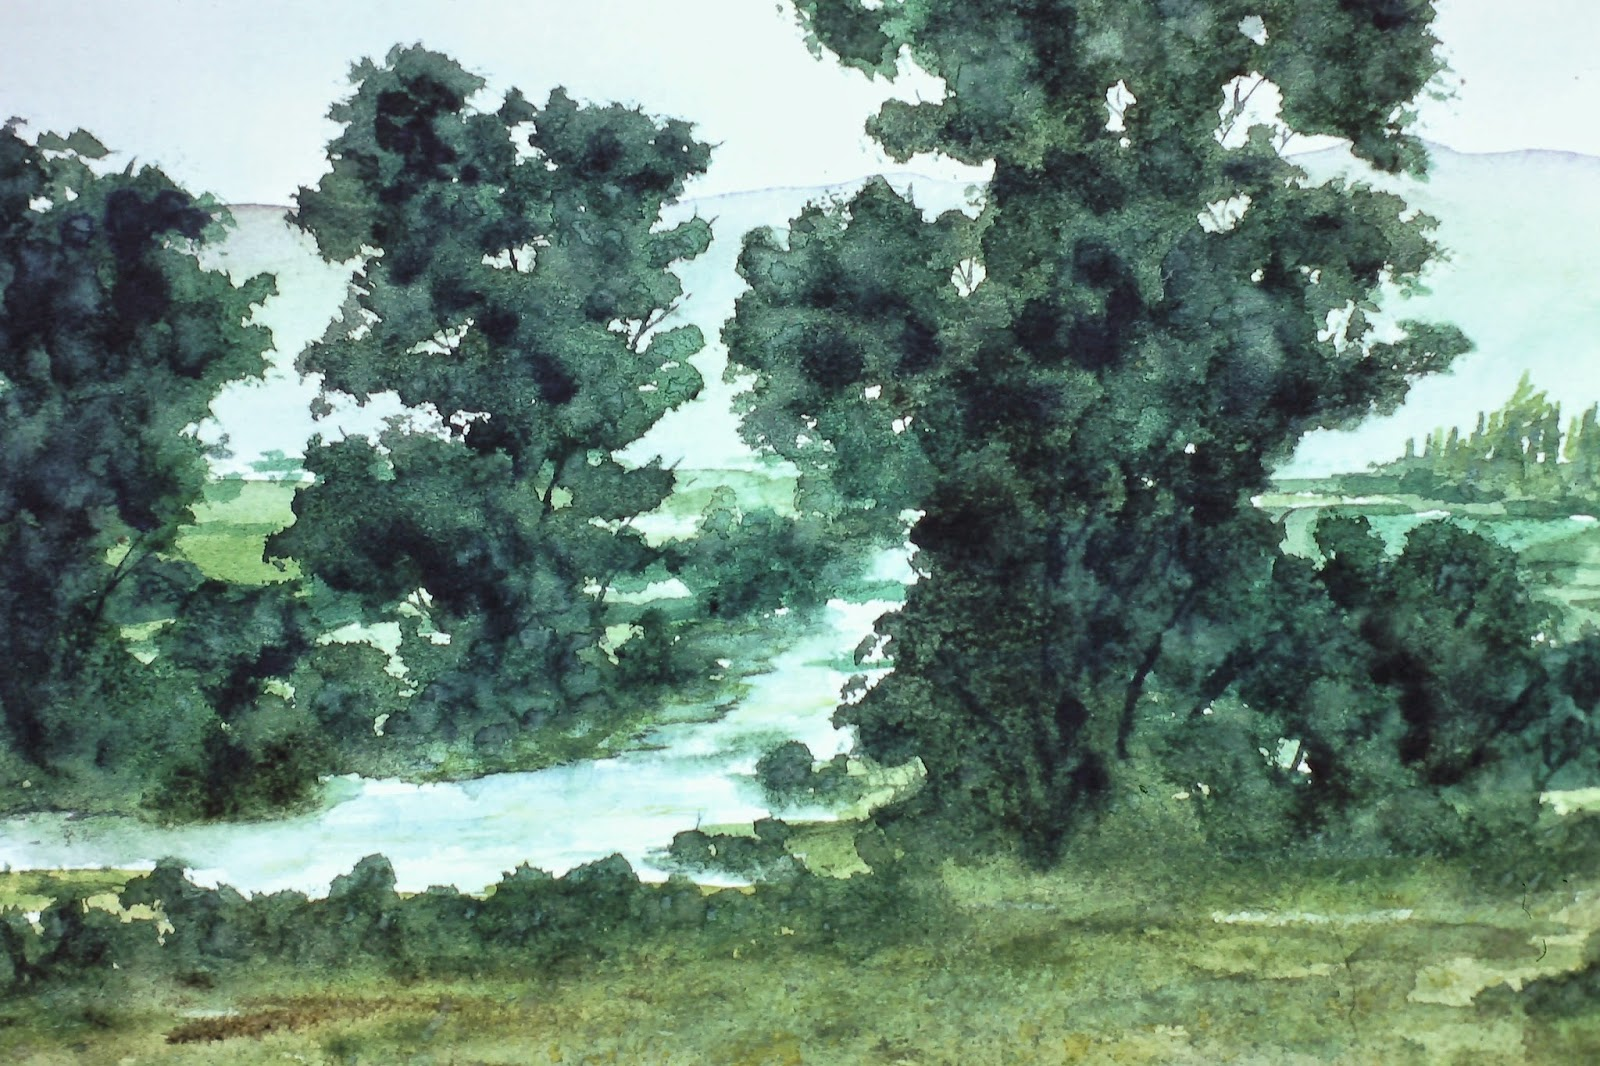 River South Esk, near Brechin, Angus, Scotland  30x40 inches. Watercolor on paper, c. 1991. by Lenny Campello